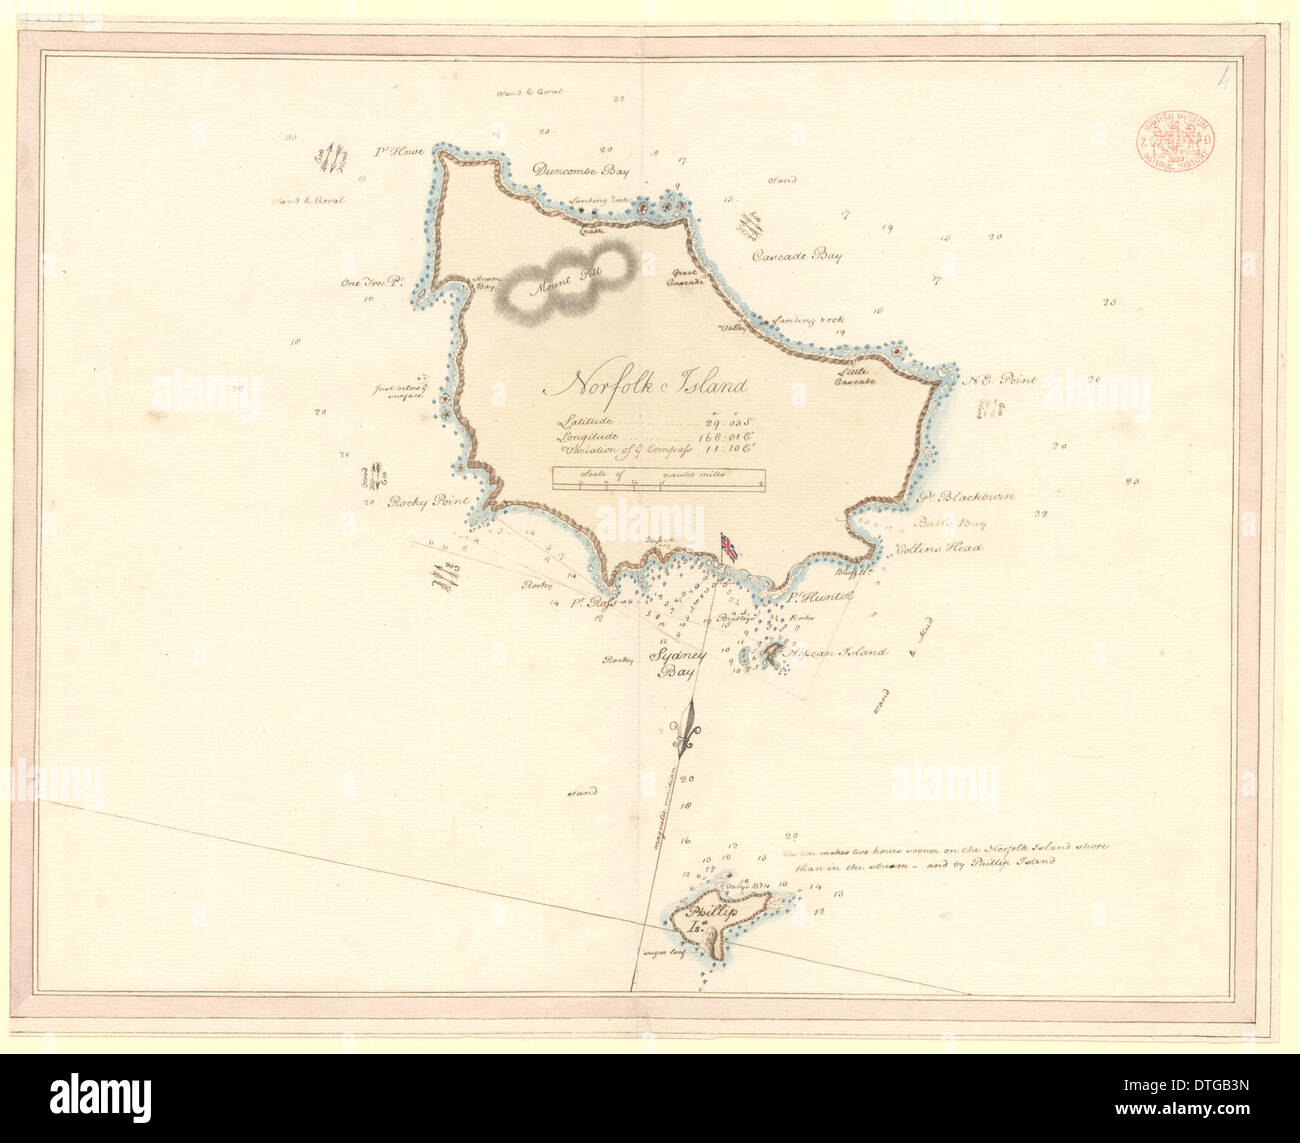 Chart of Norfolk, Nepean and Phillip Islands - Stock Image